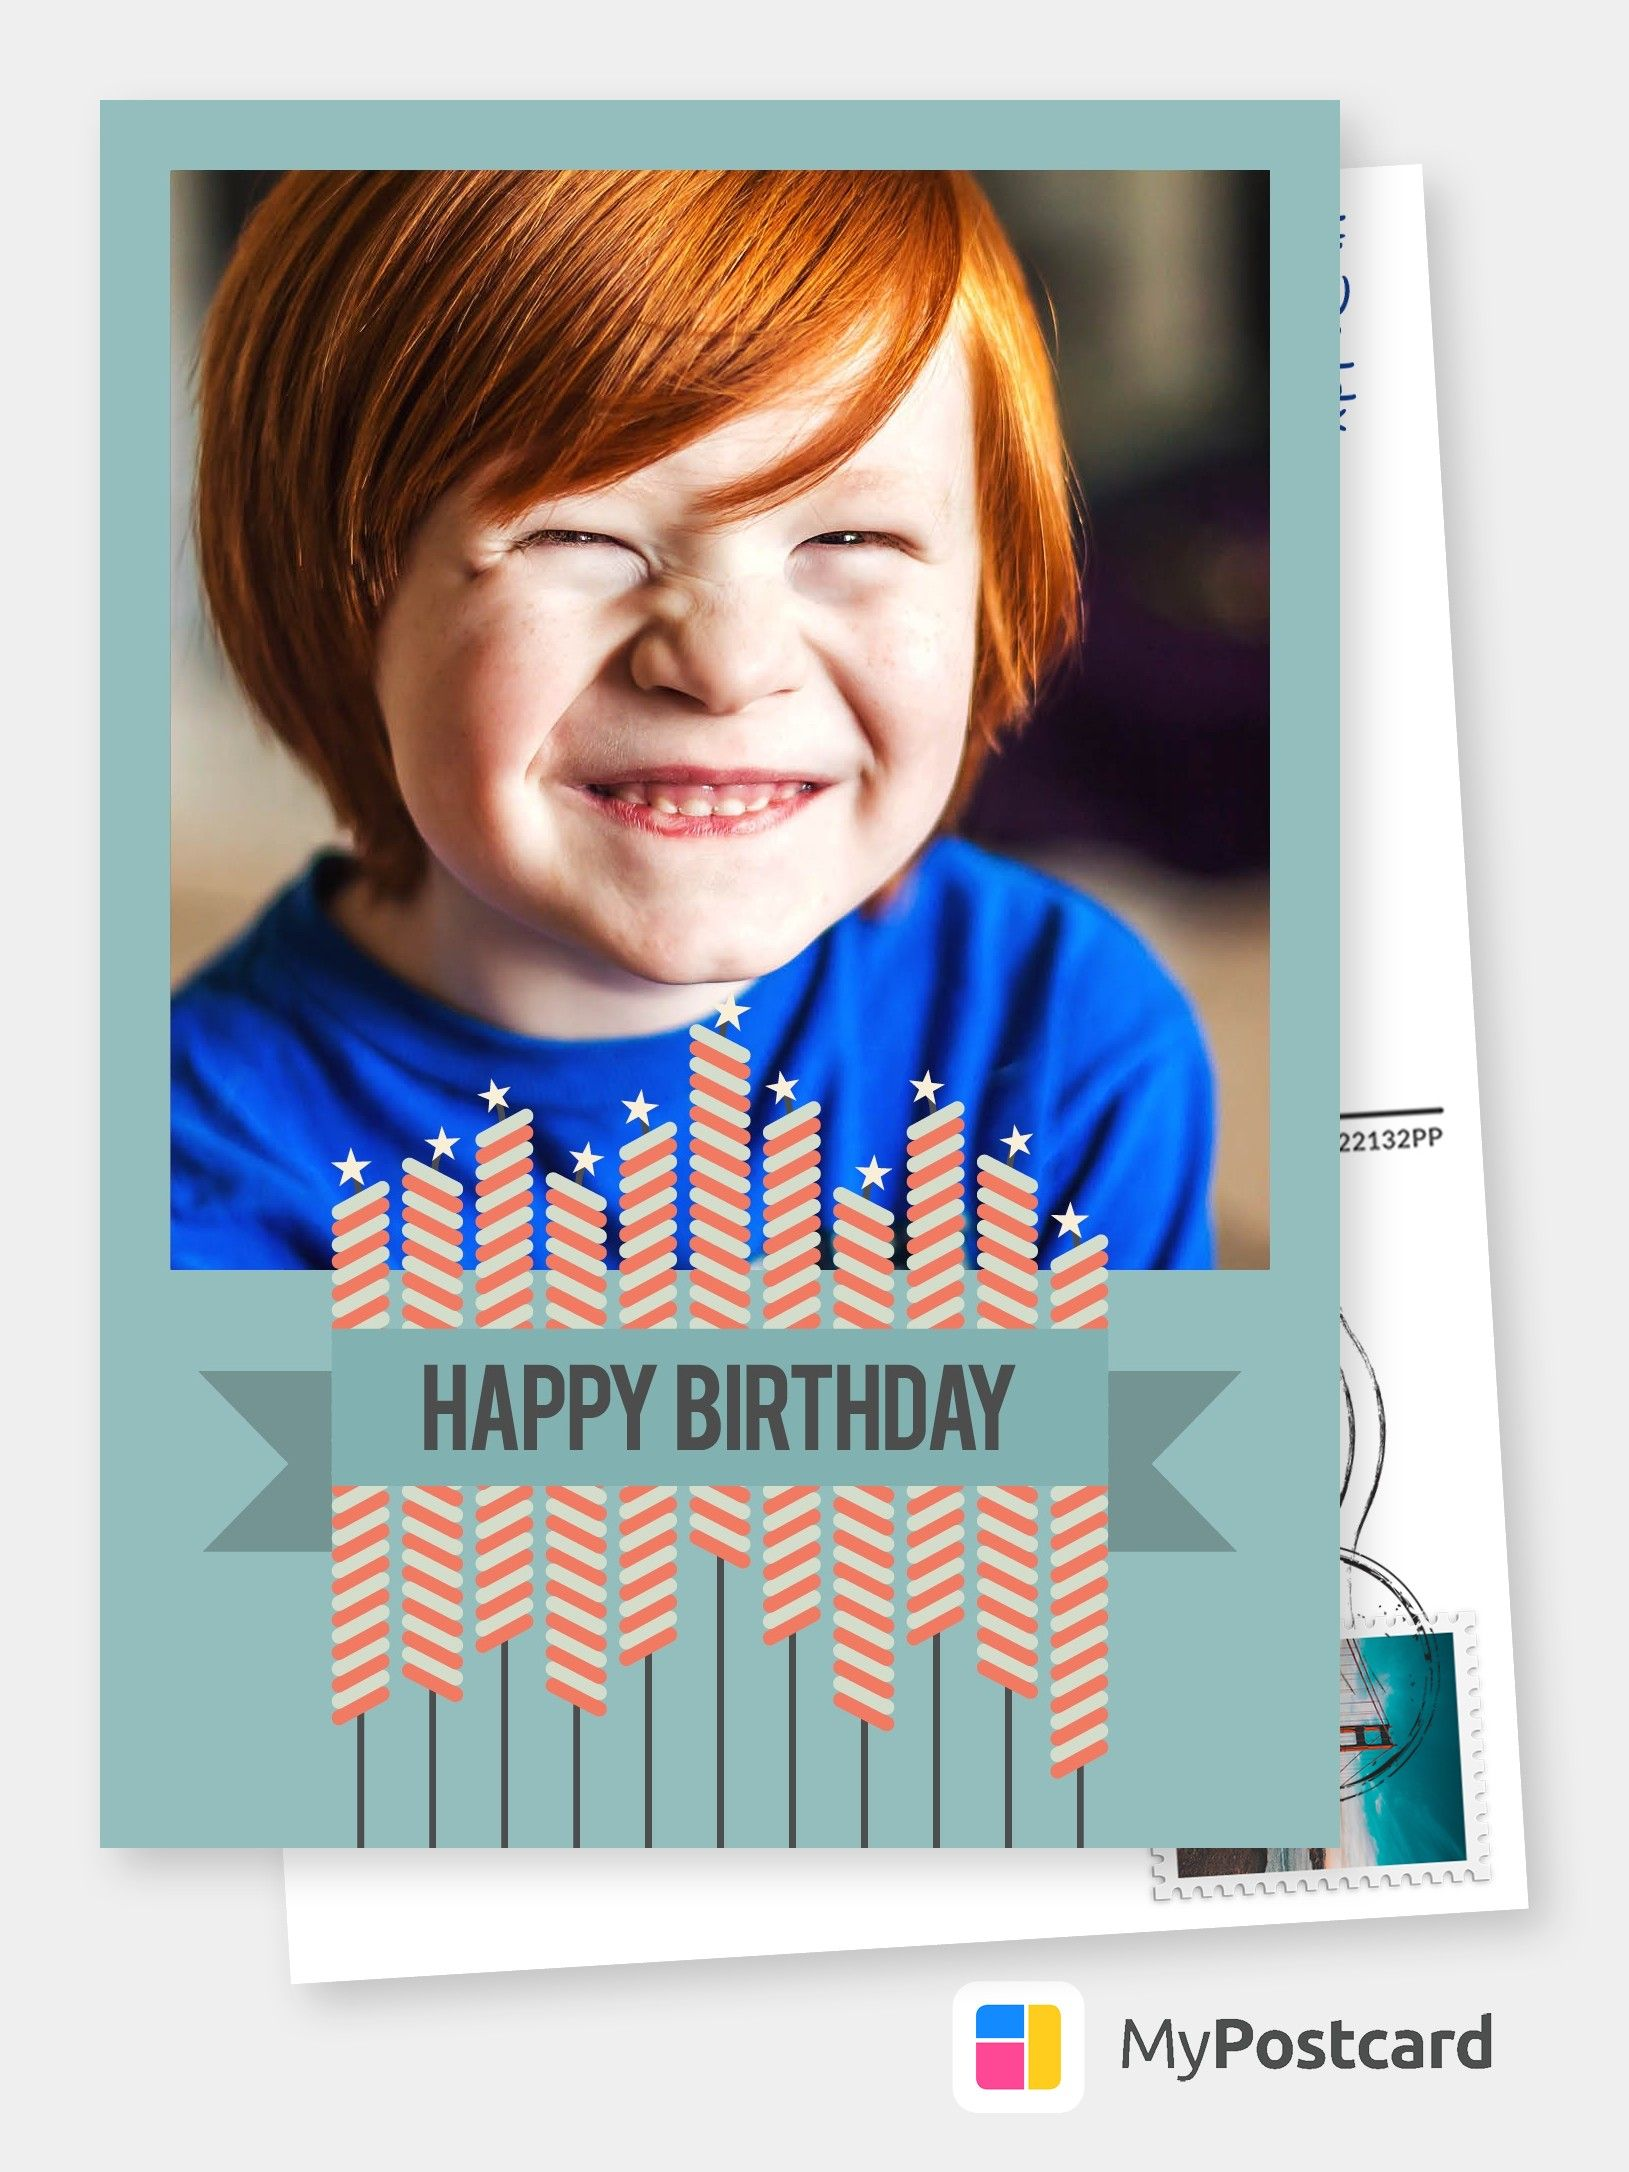 Send Photo Birthday Cards Online To Canada Us Uk International Free Shipping Printed Mailed For You Use Your Own Photos Cards Postcard Greeting Birthday